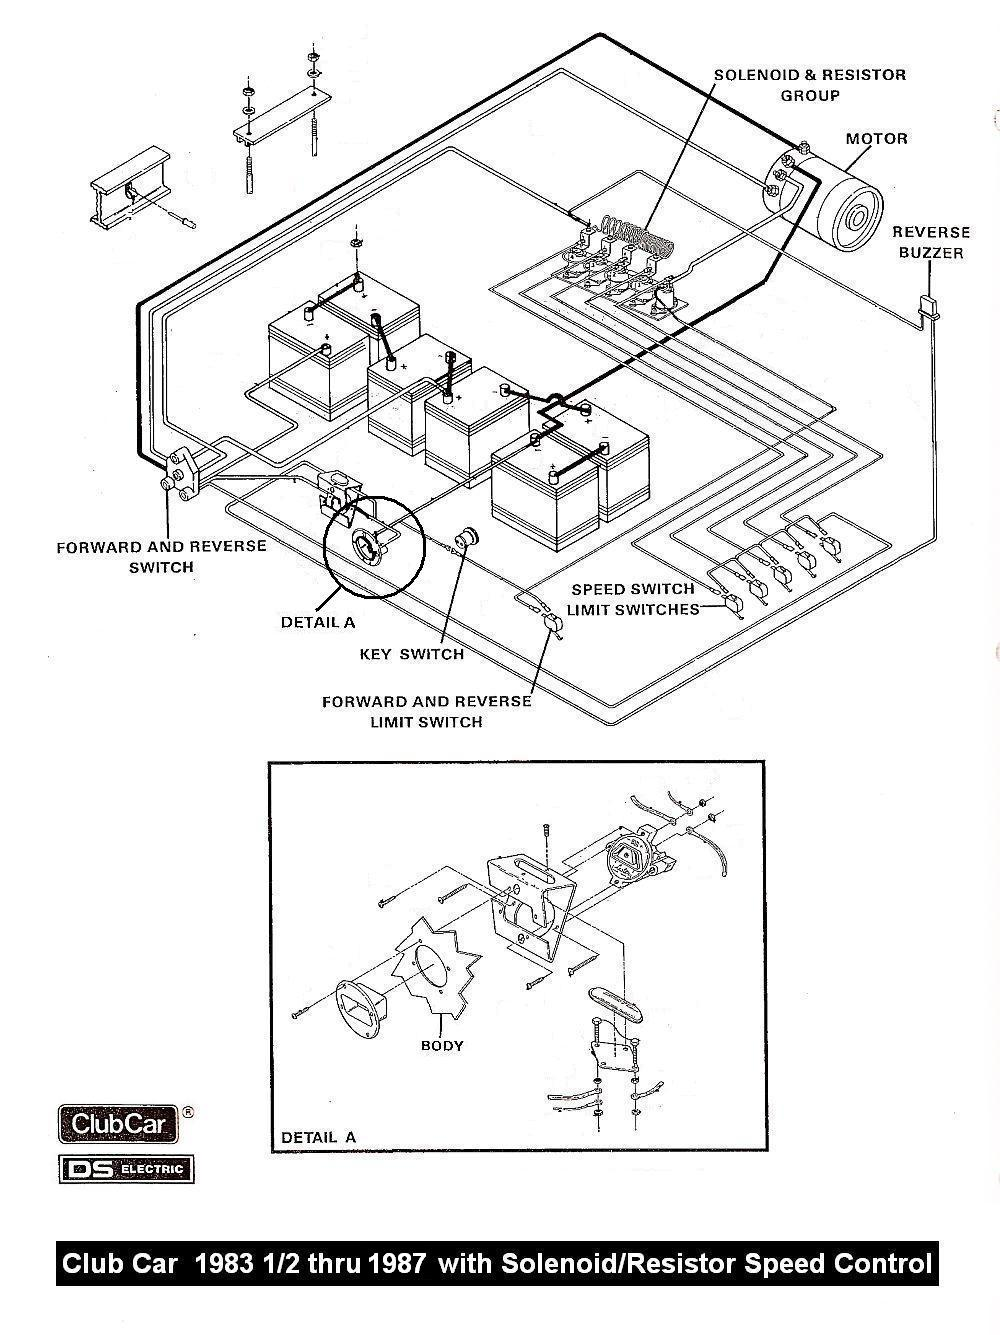 Cadillac Engines History in addition 486407 Power Window Wiring as well TM 5 4310 384 13 16 additionally Smith Masterfit Direct Replacement moreover 36 Volt E Z Go Wiring Diagram. on marathon electric motors wiring diagram